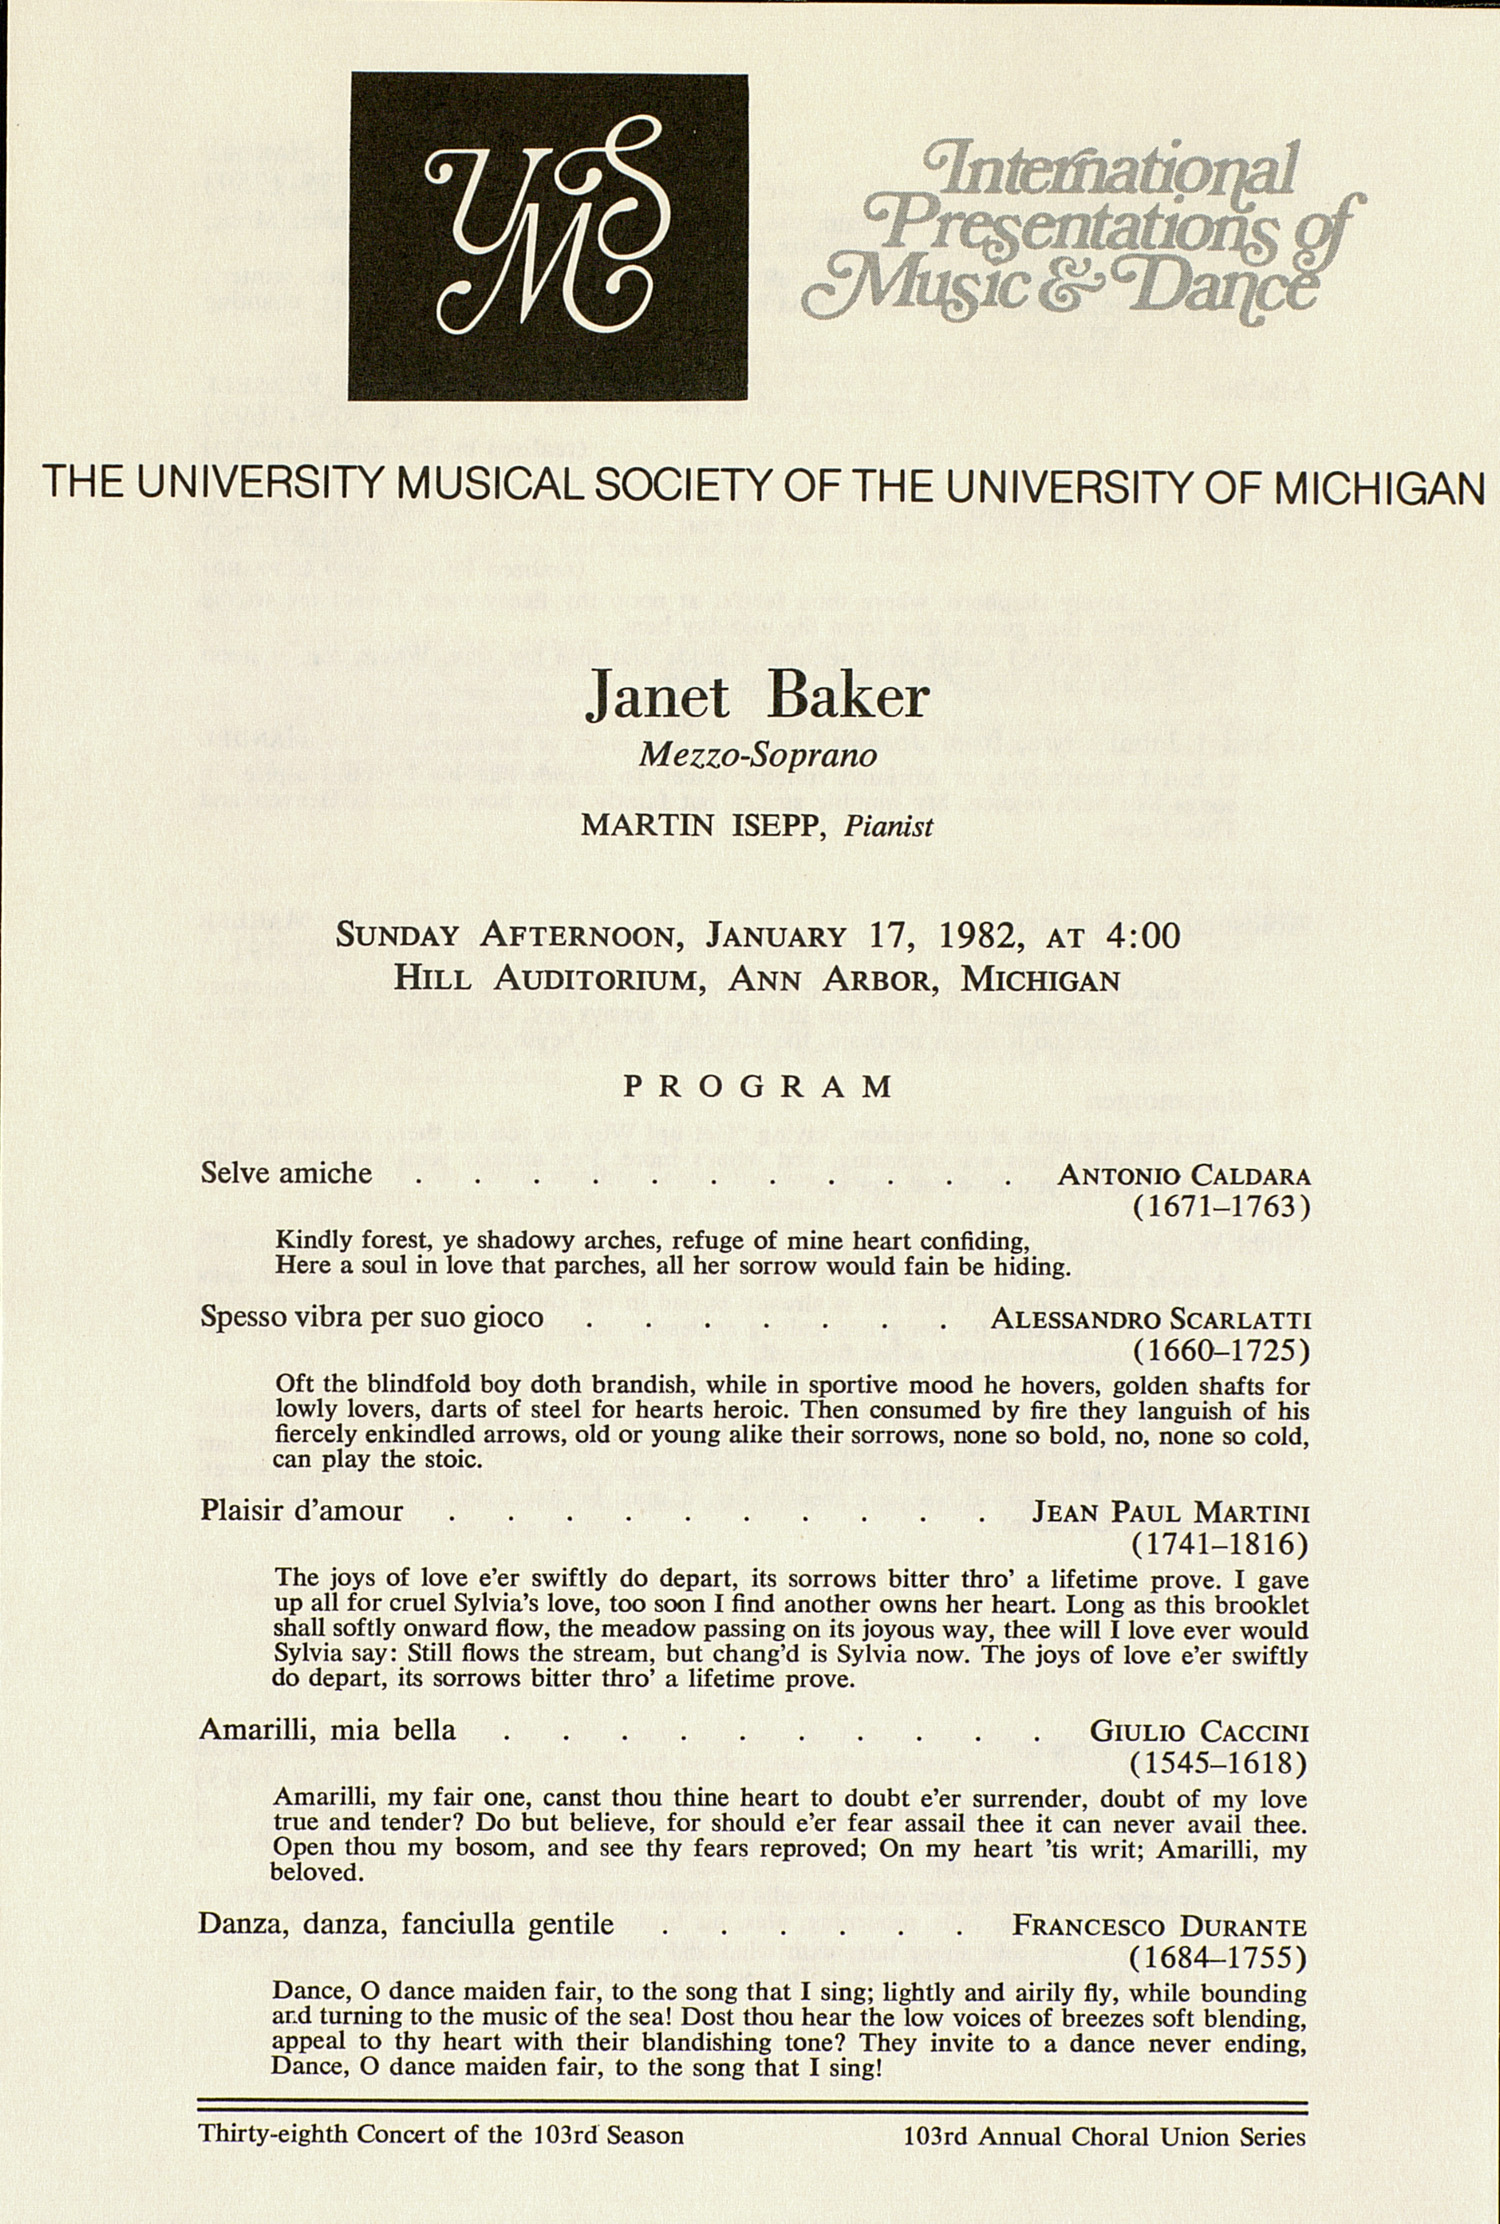 UMS Concert Program, January 17, 1982: International Presentations Of Music & Dance --  image